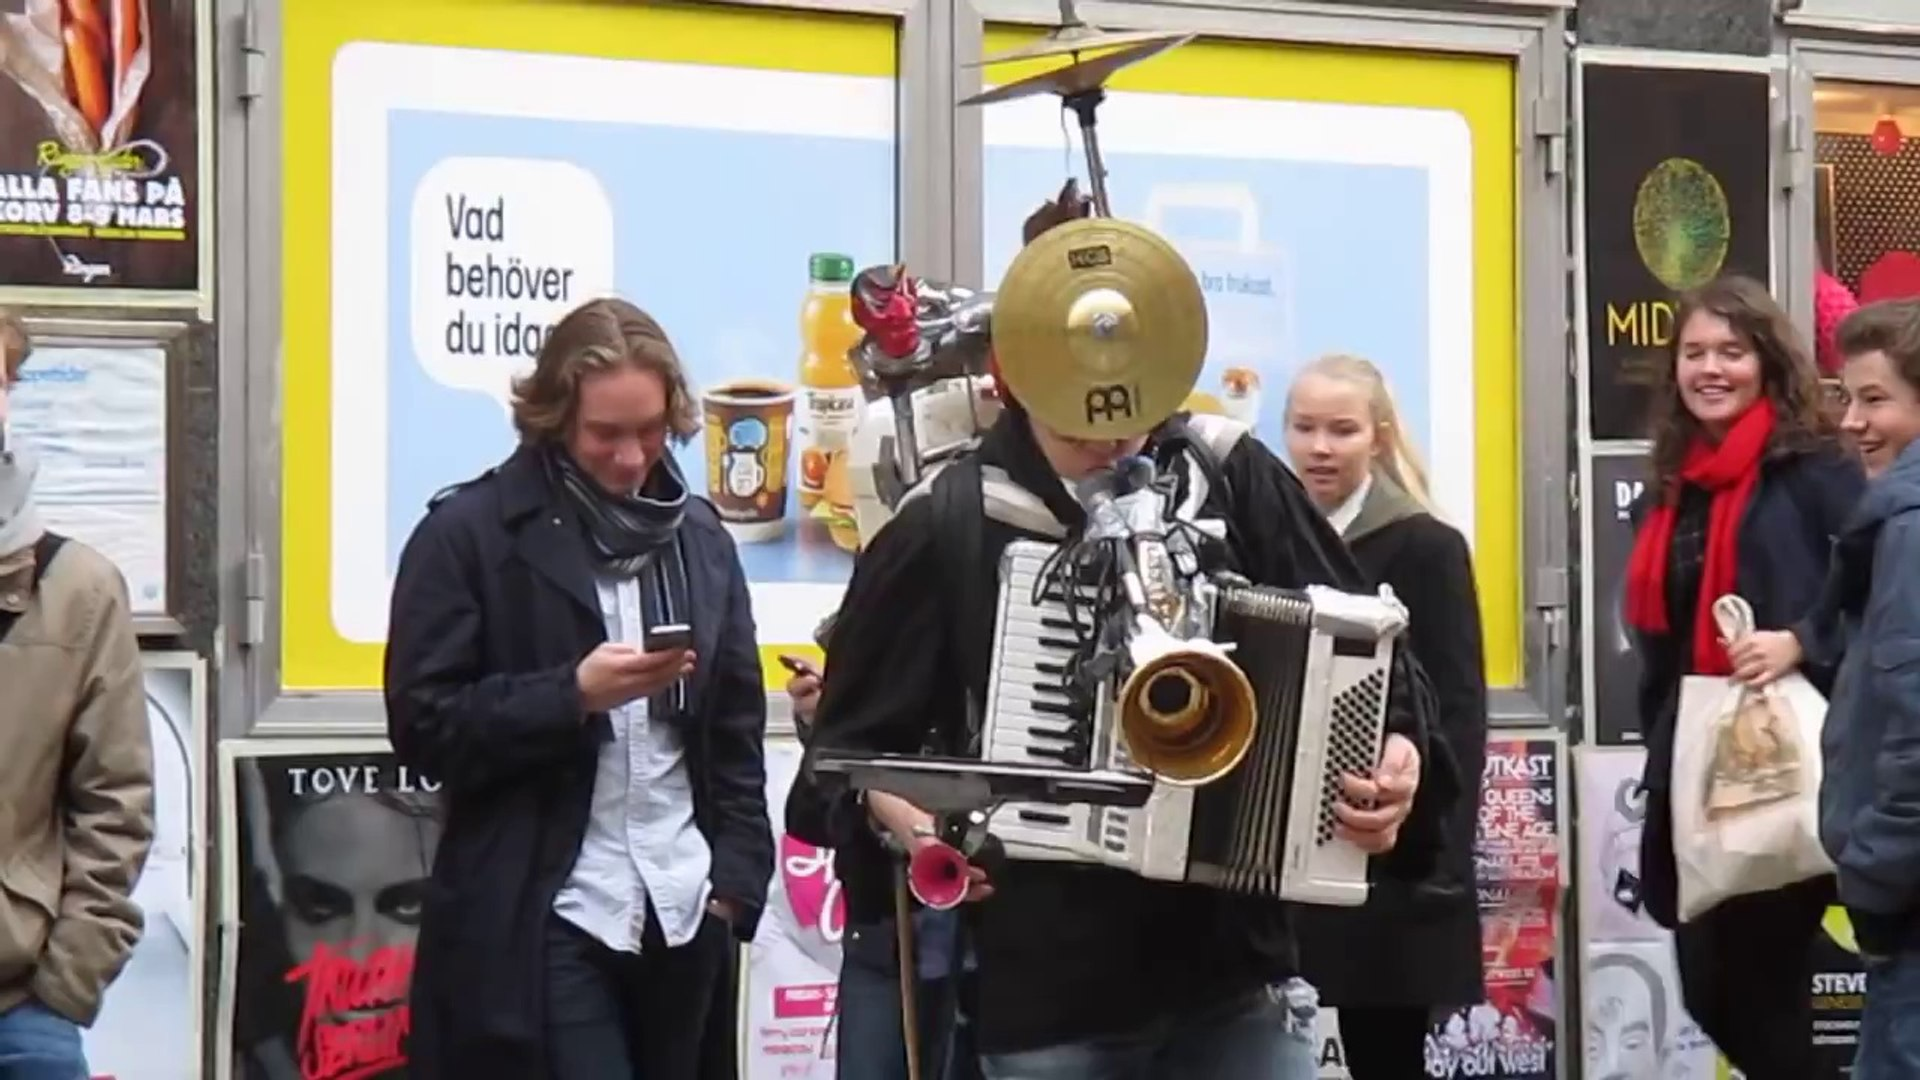 One Man Band Swedish Street Musician Covers Star Wars Theme Song